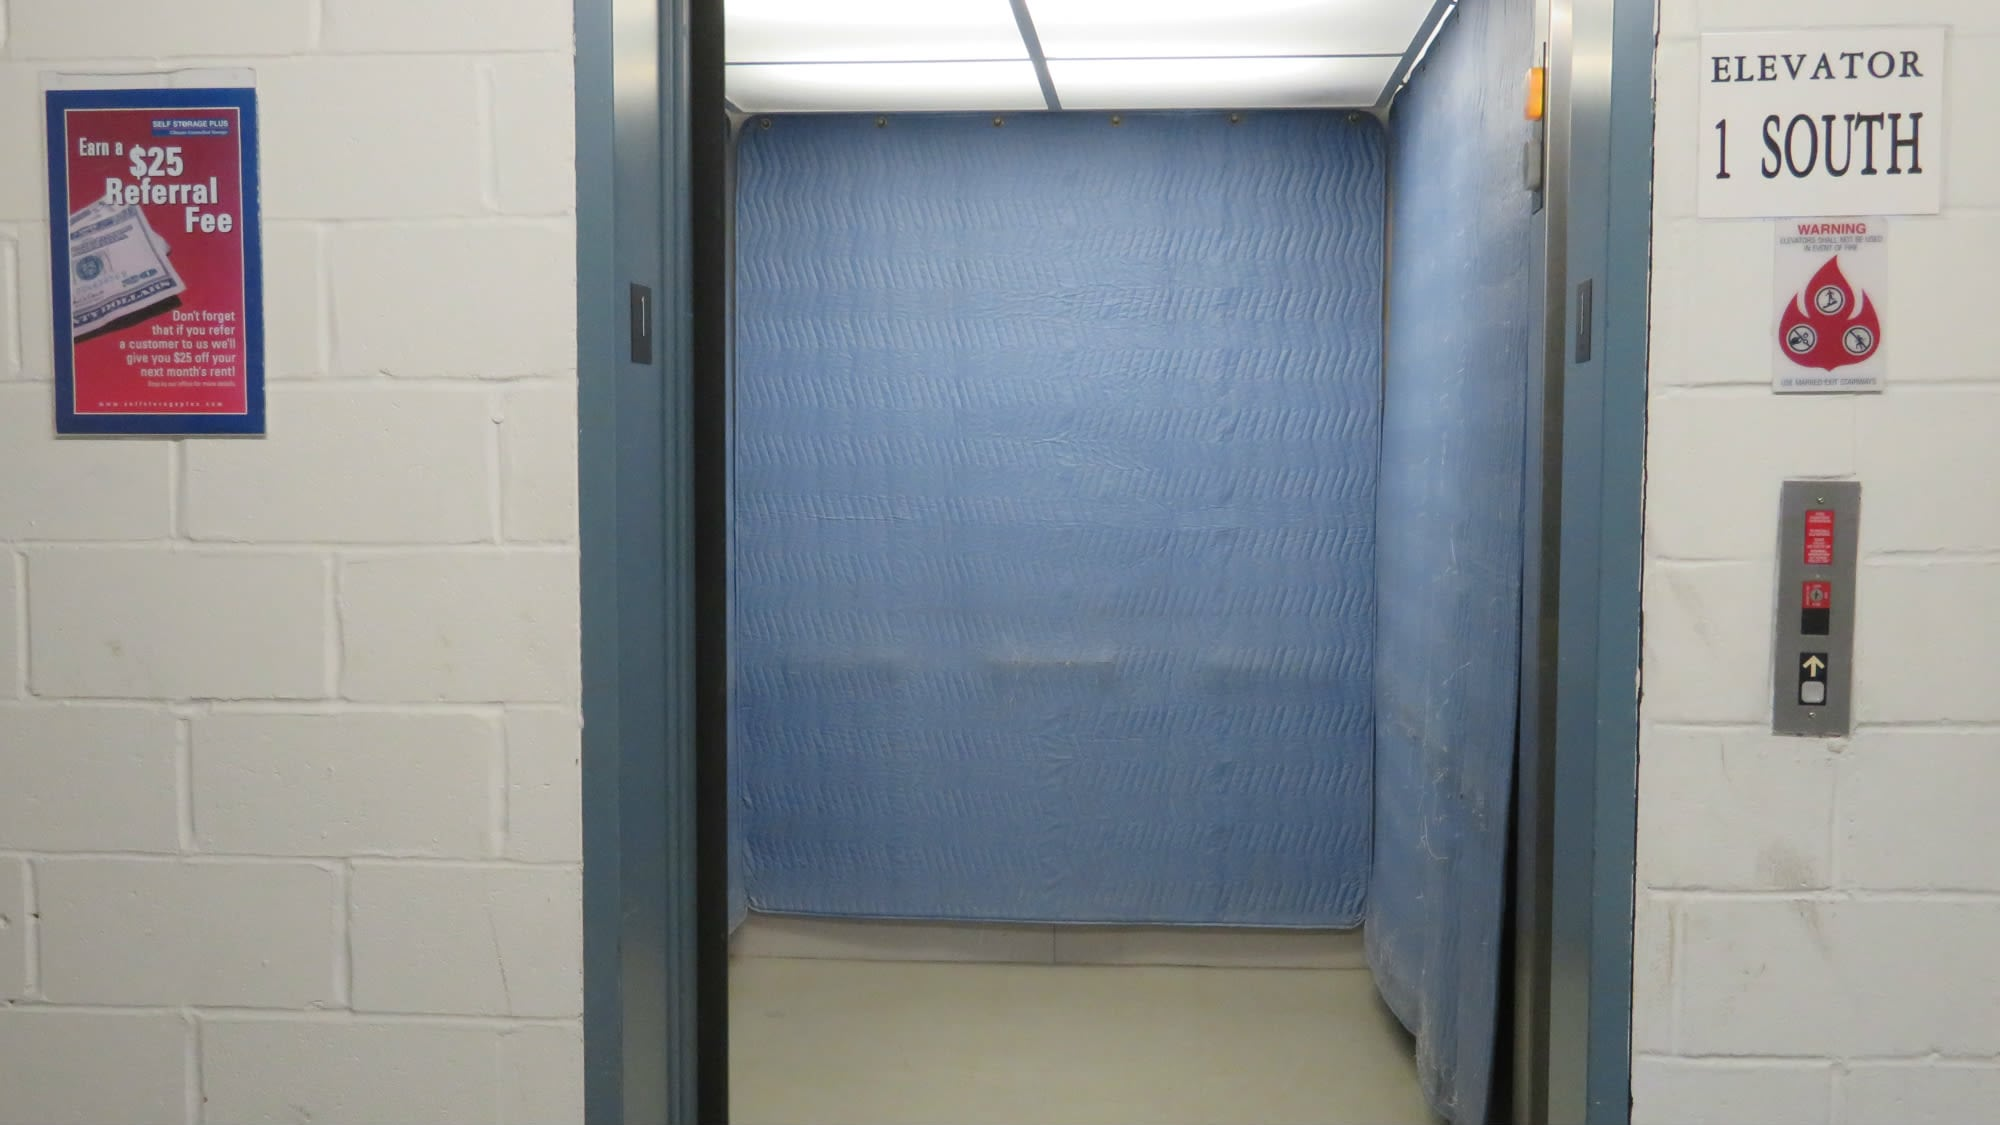 Elevator access at Self Storage Plus in Gambrills, MD